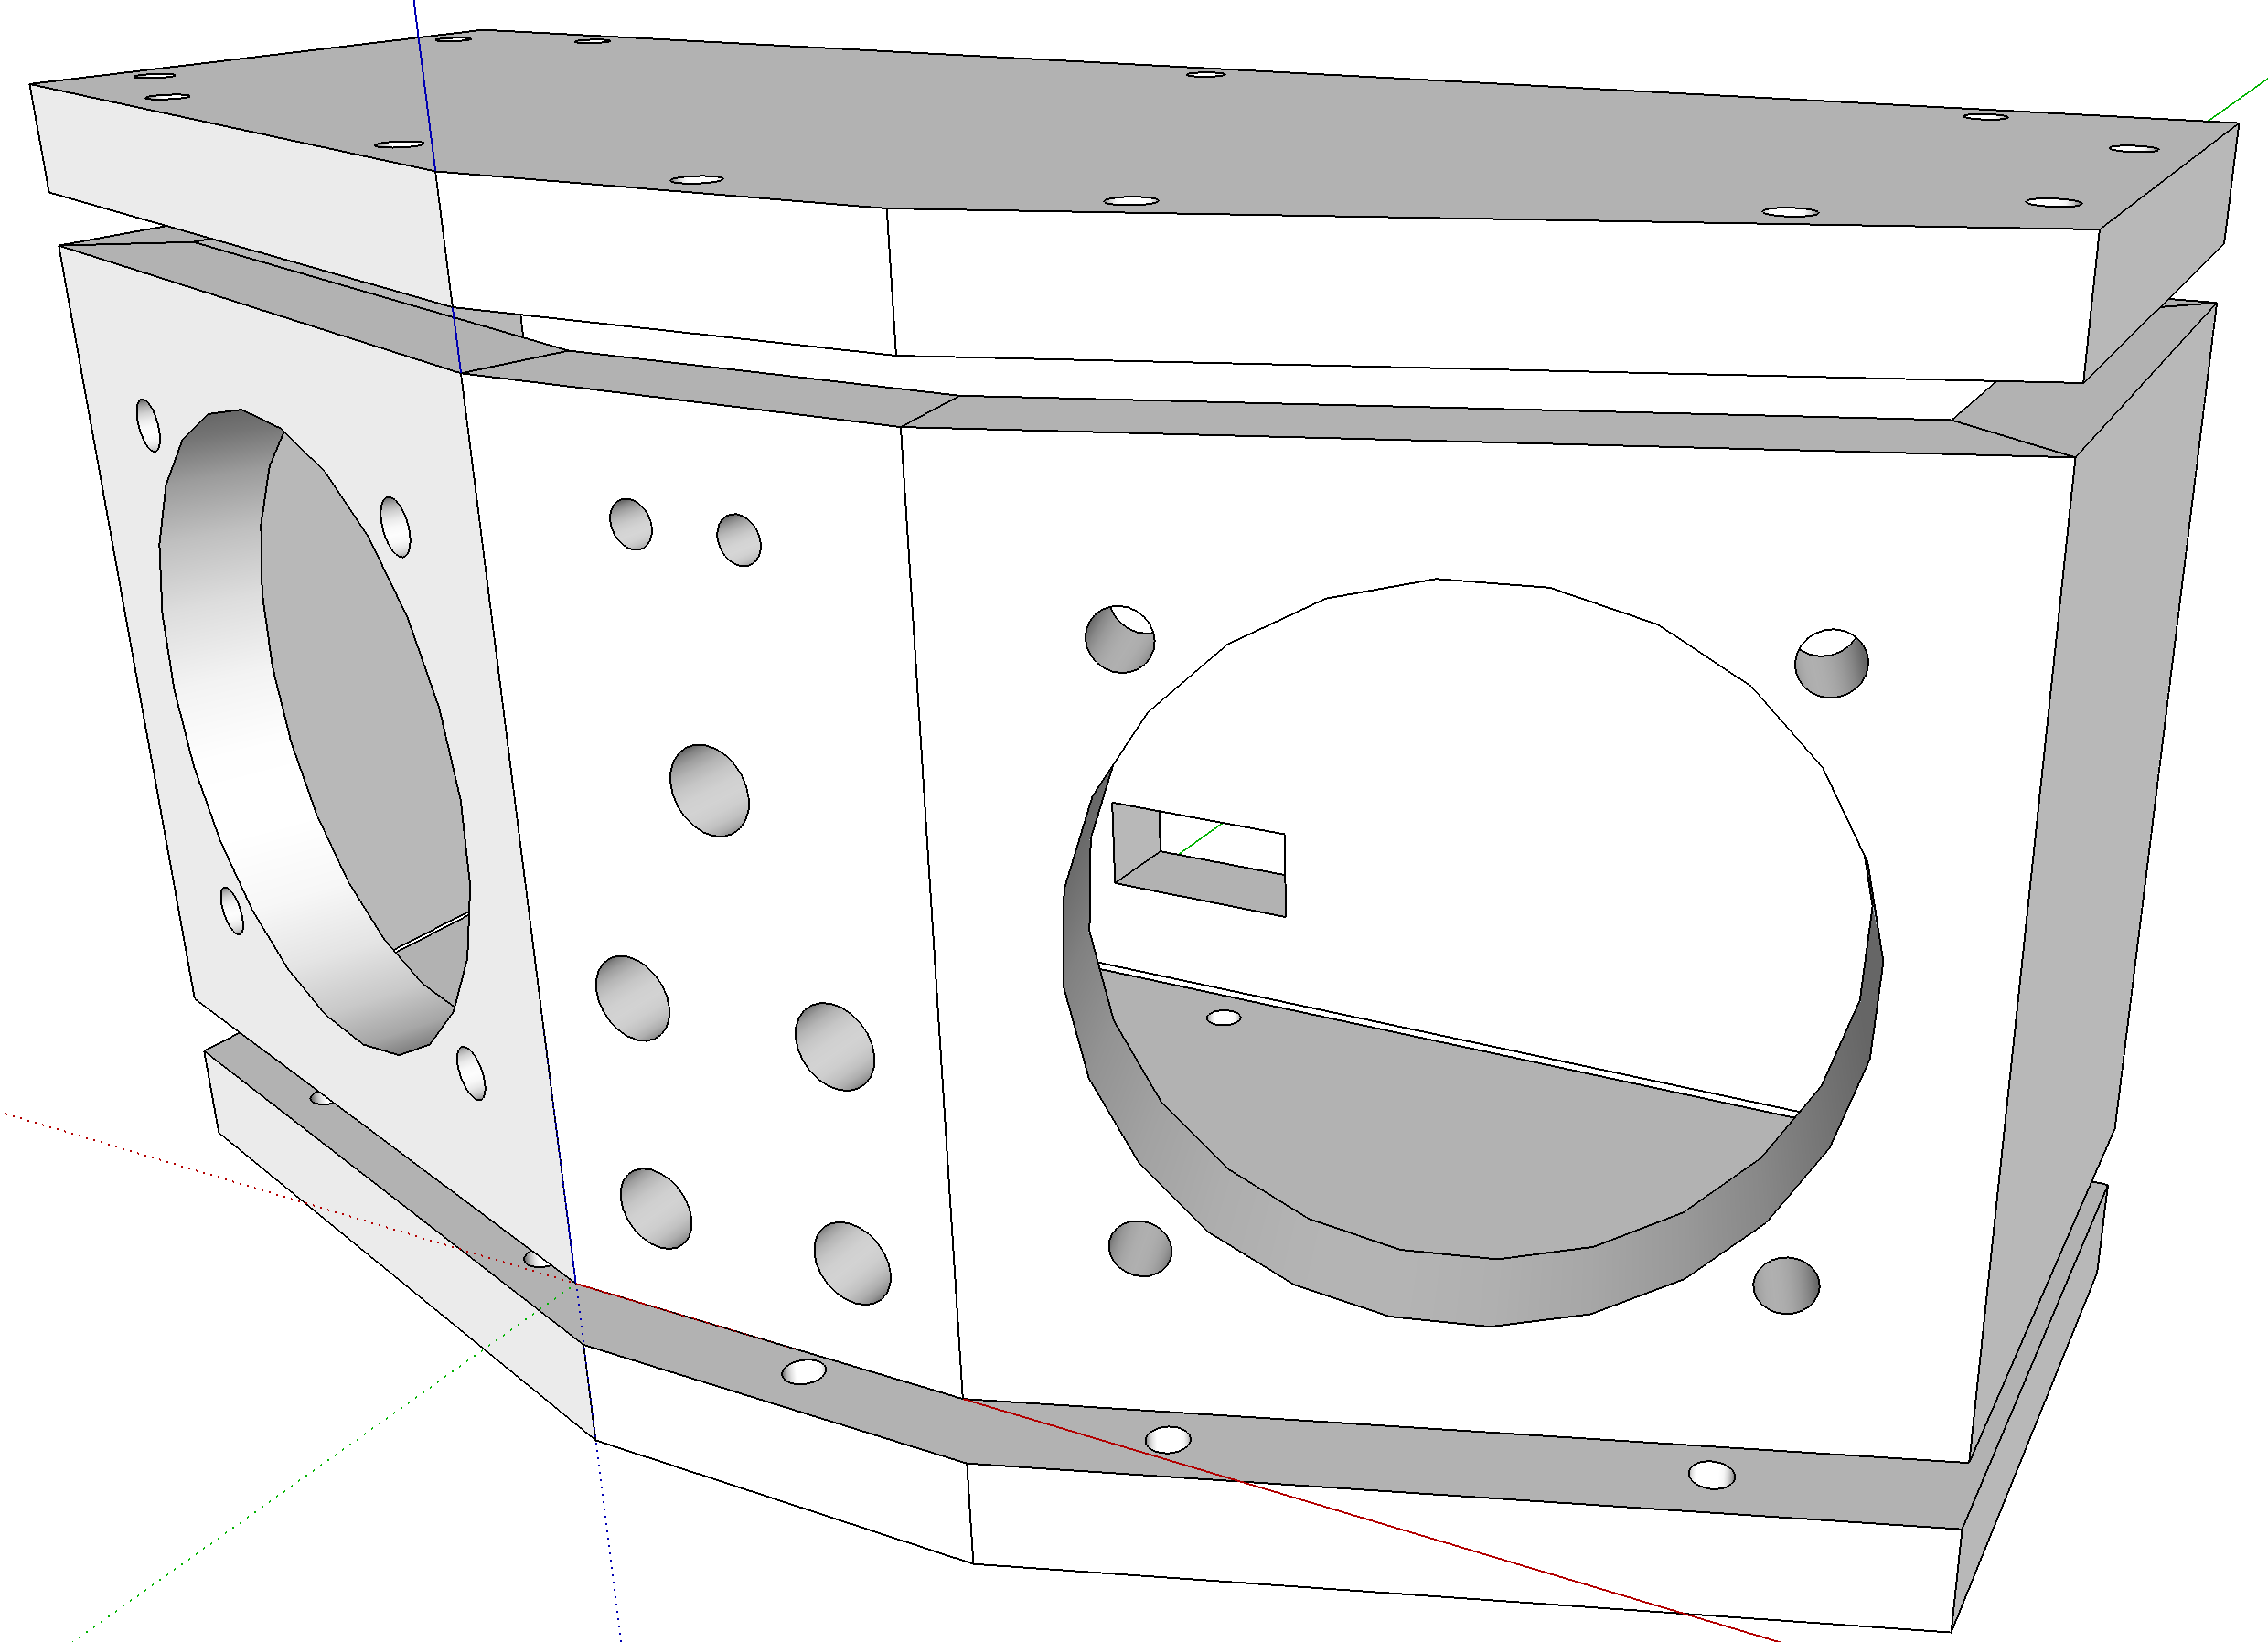 bt-speaker-garage-v3-model.png